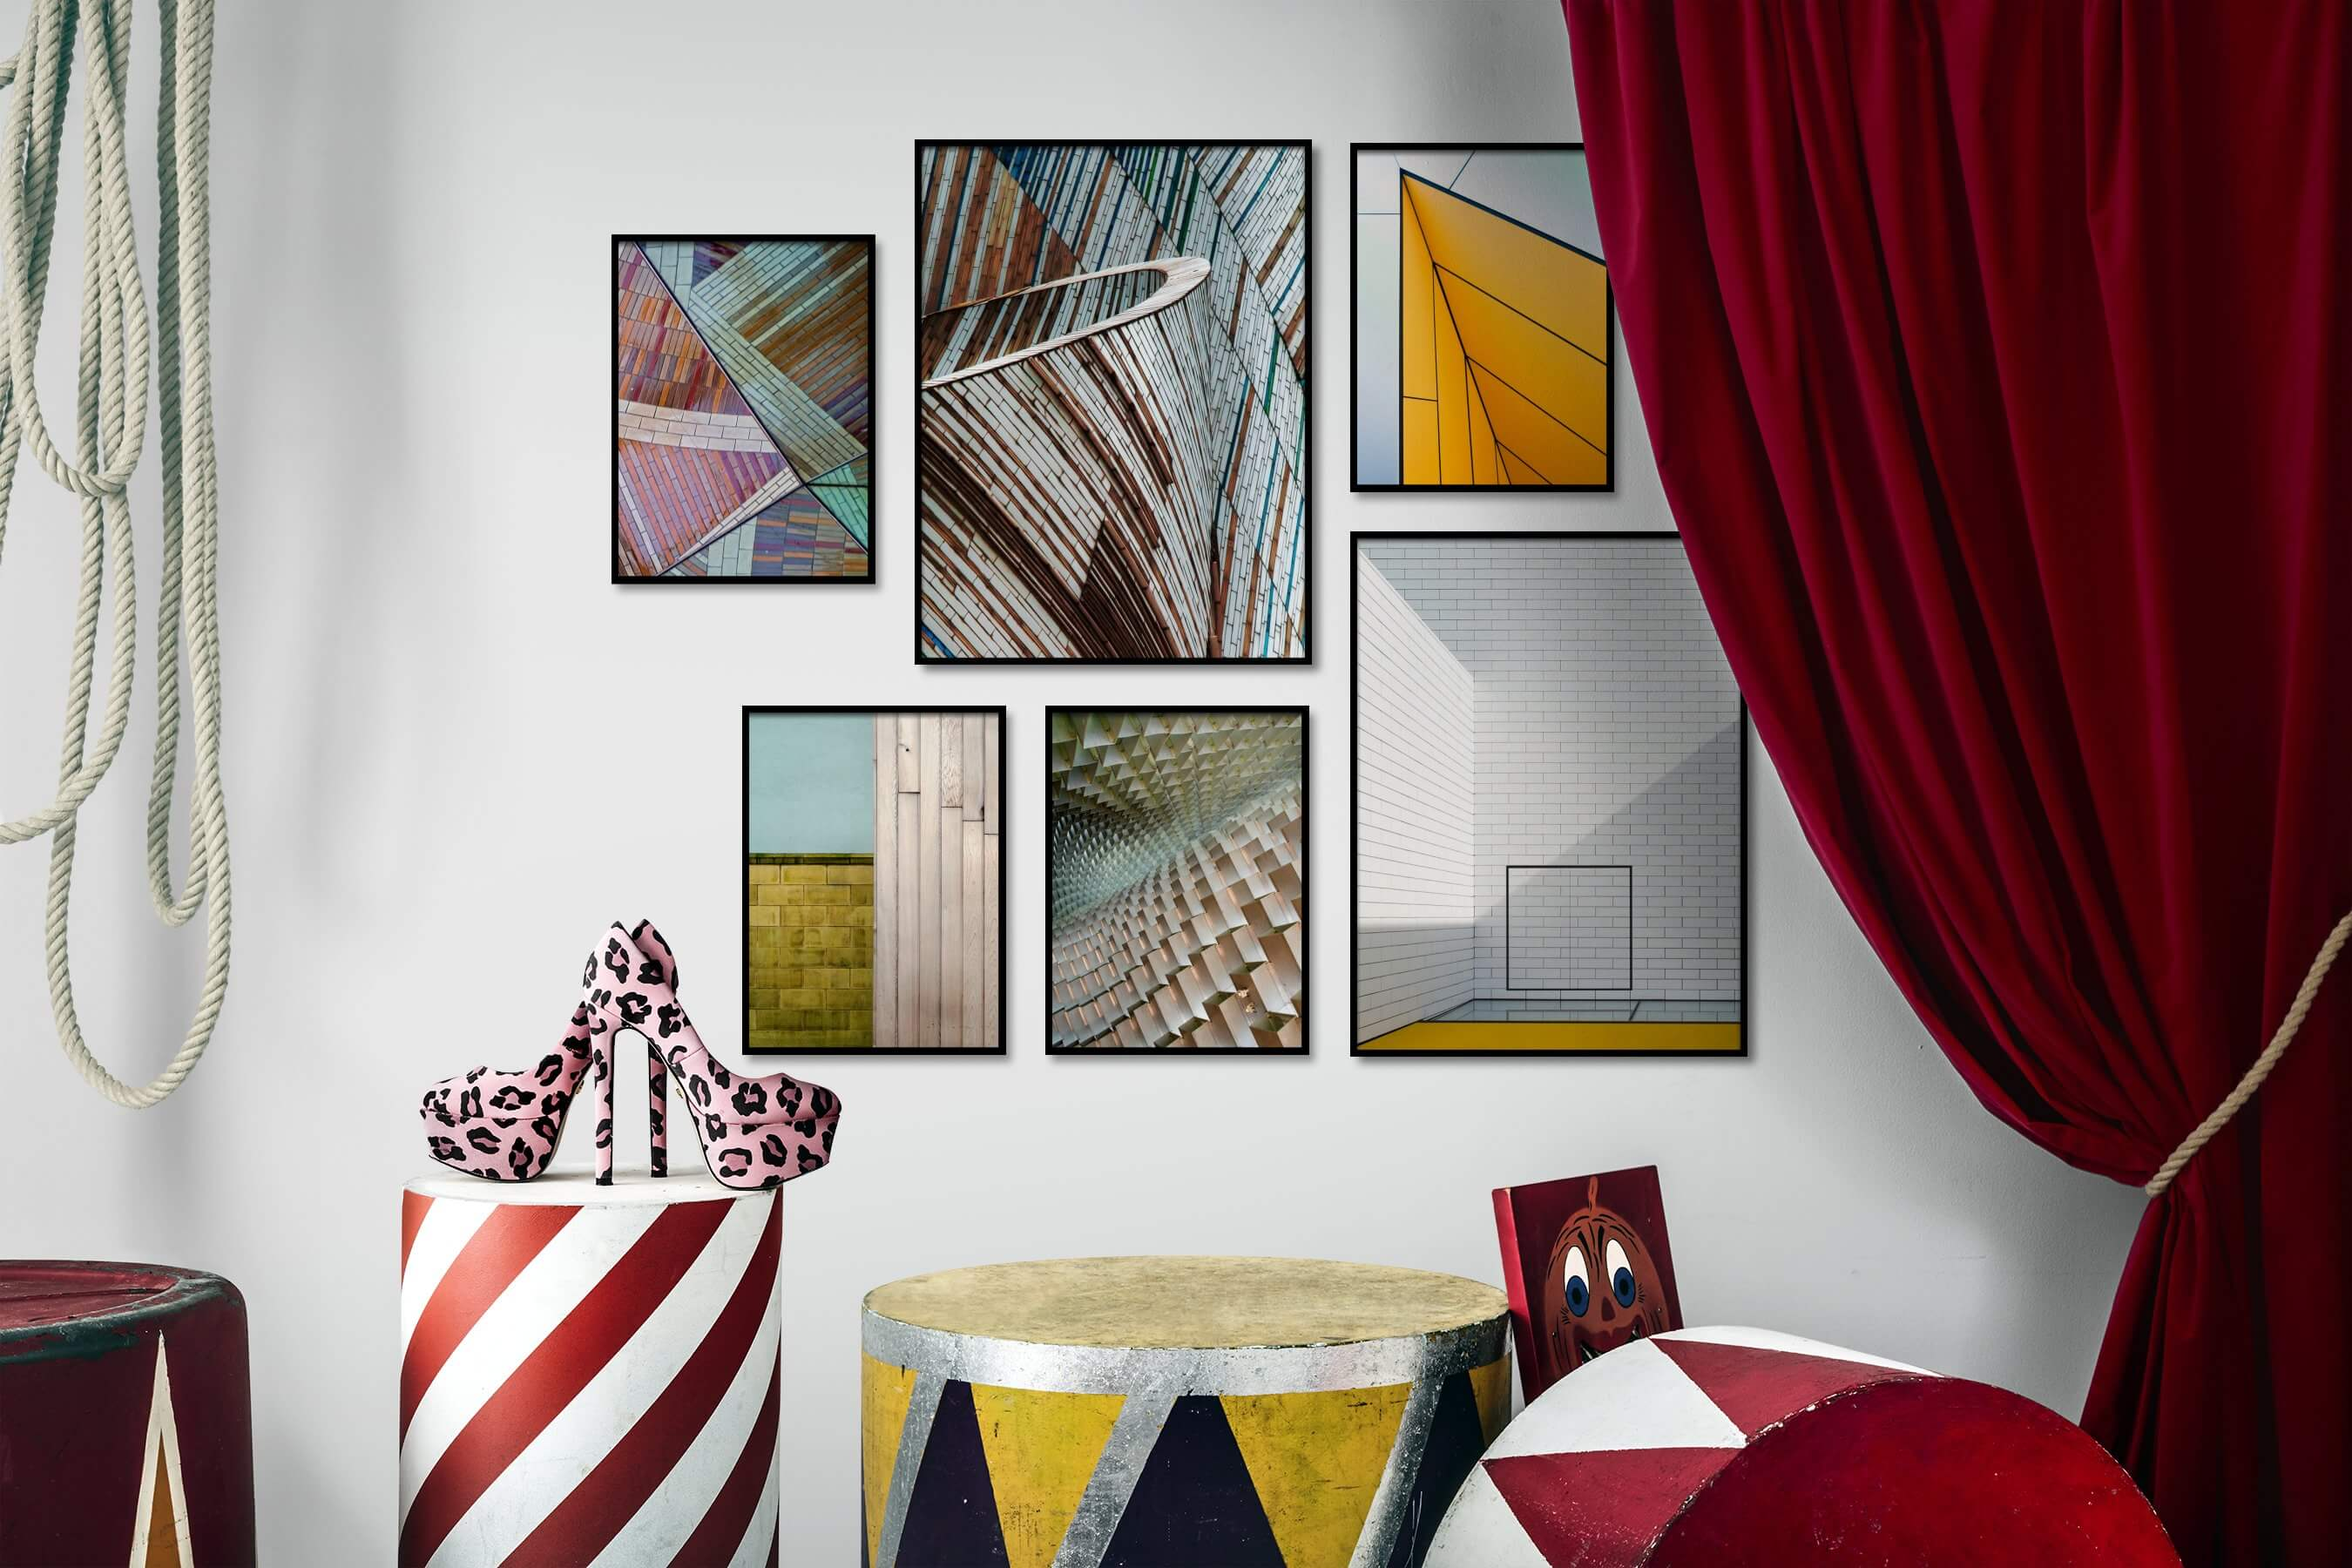 Gallery wall idea with six framed pictures arranged on a wall depicting Colorful, For the Maximalist, For the Moderate, Vintage, and For the Minimalist